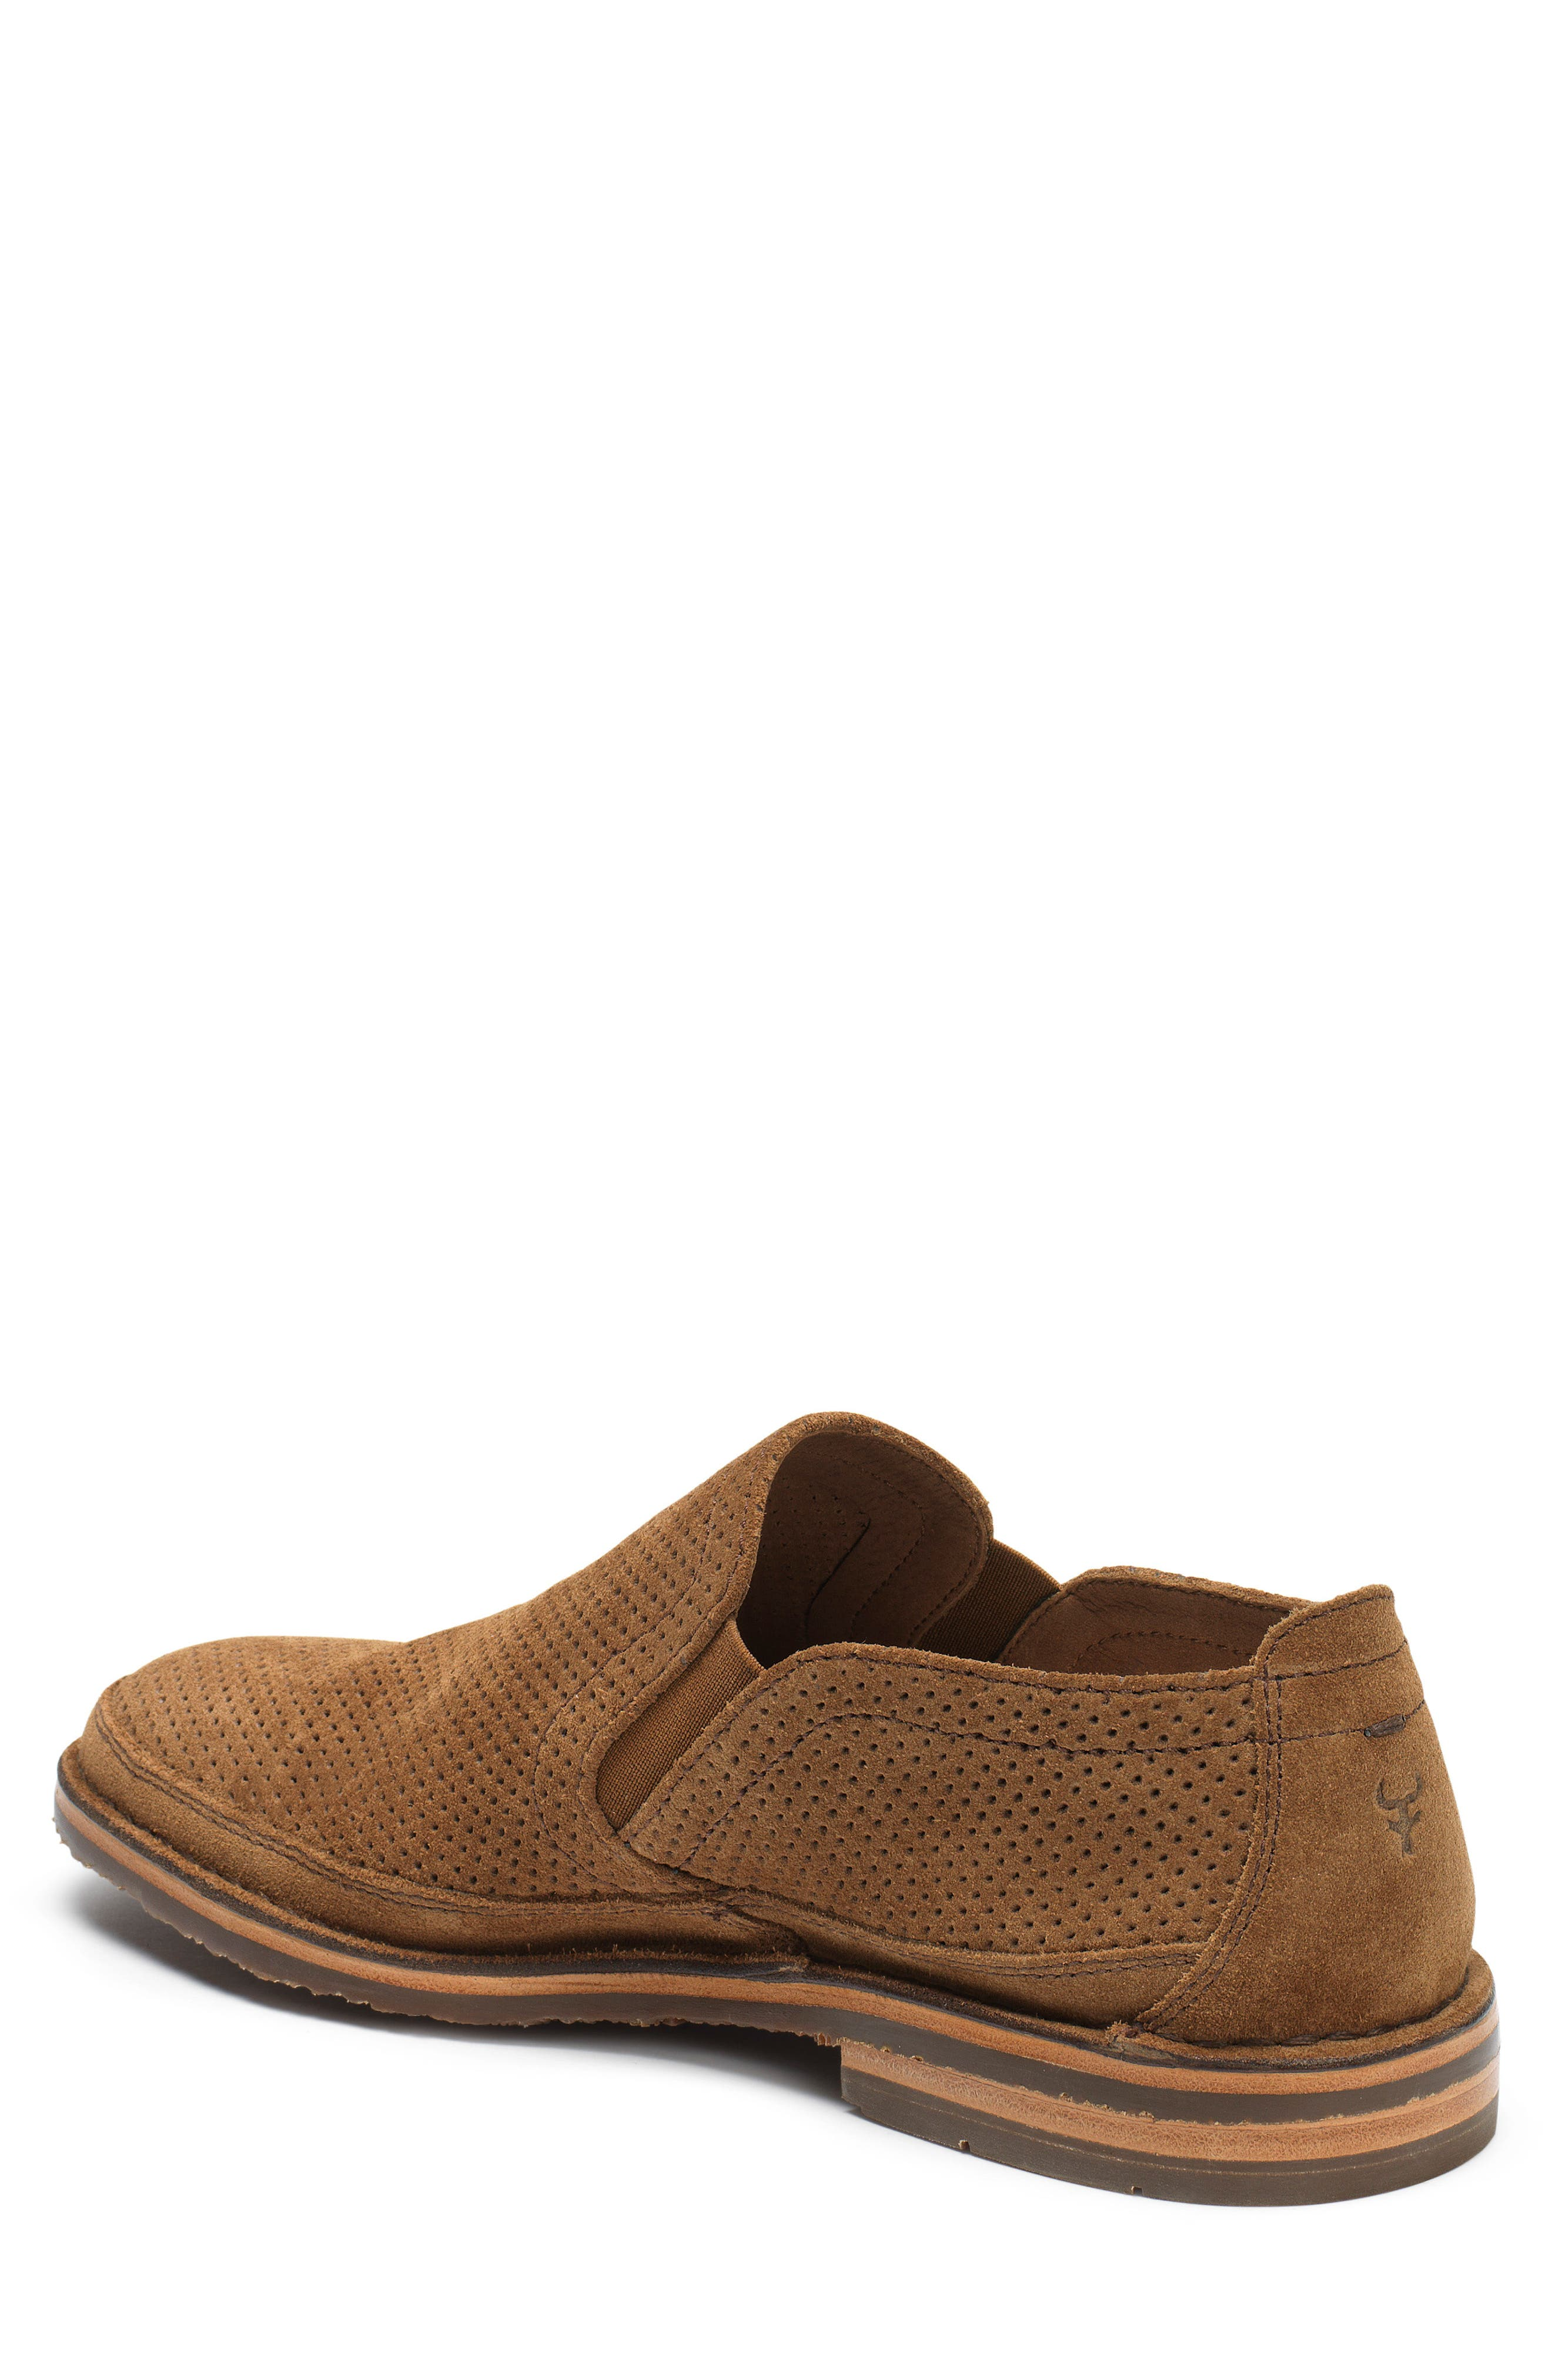 Bradley Perforated Slip-On,                             Alternate thumbnail 2, color,                             Brown Suede